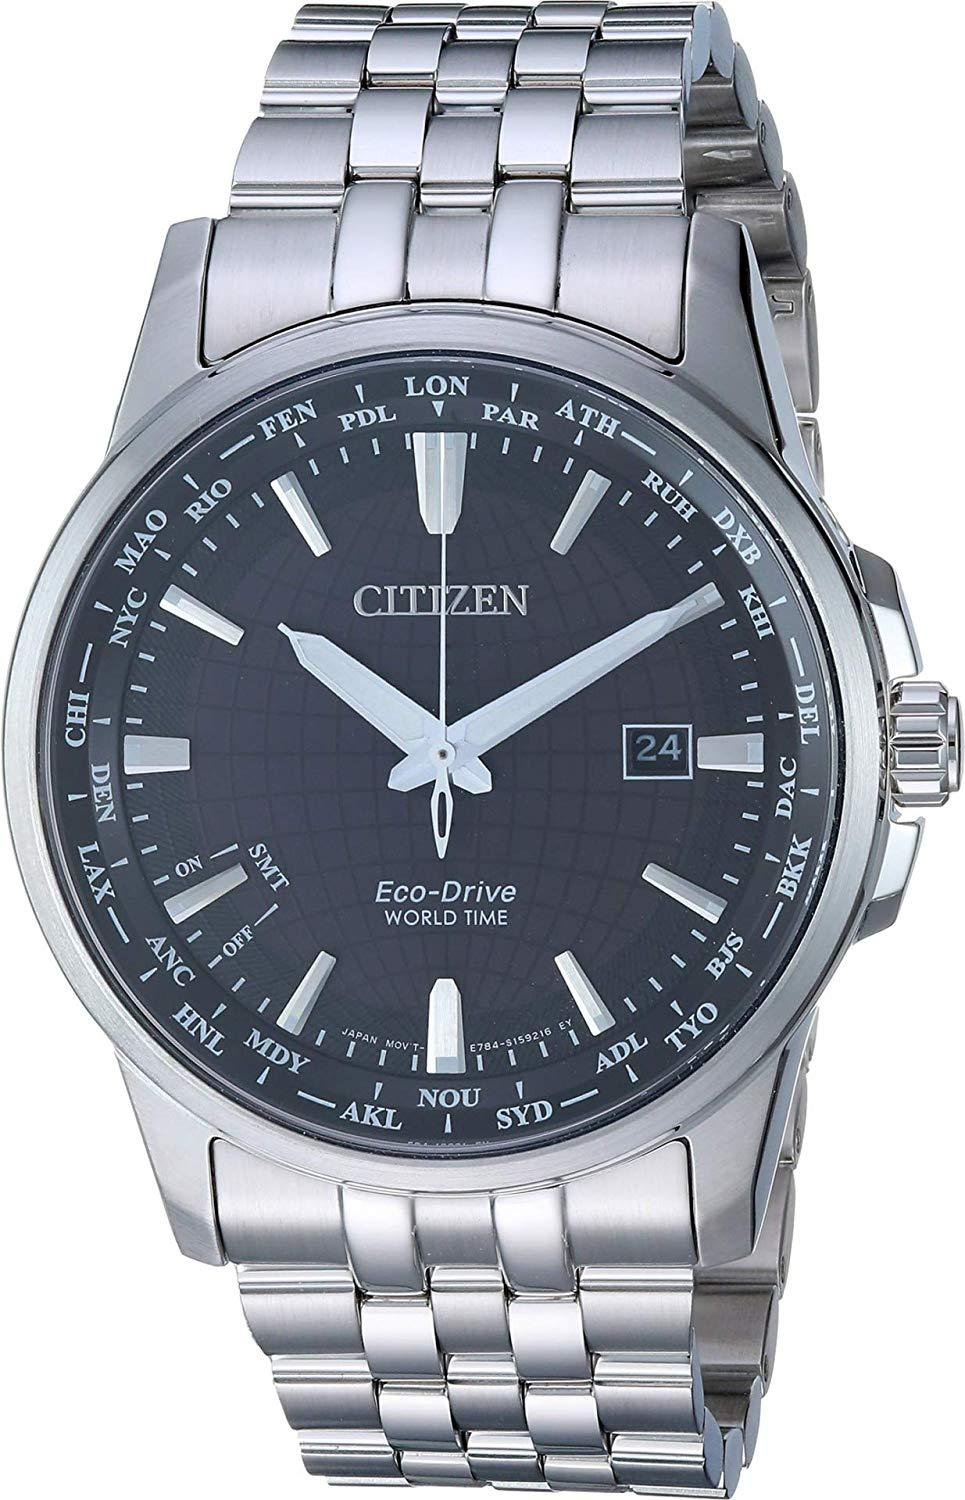 Citizen World Time Black Dial Stainless Steel Men's Watch BX1000-57E